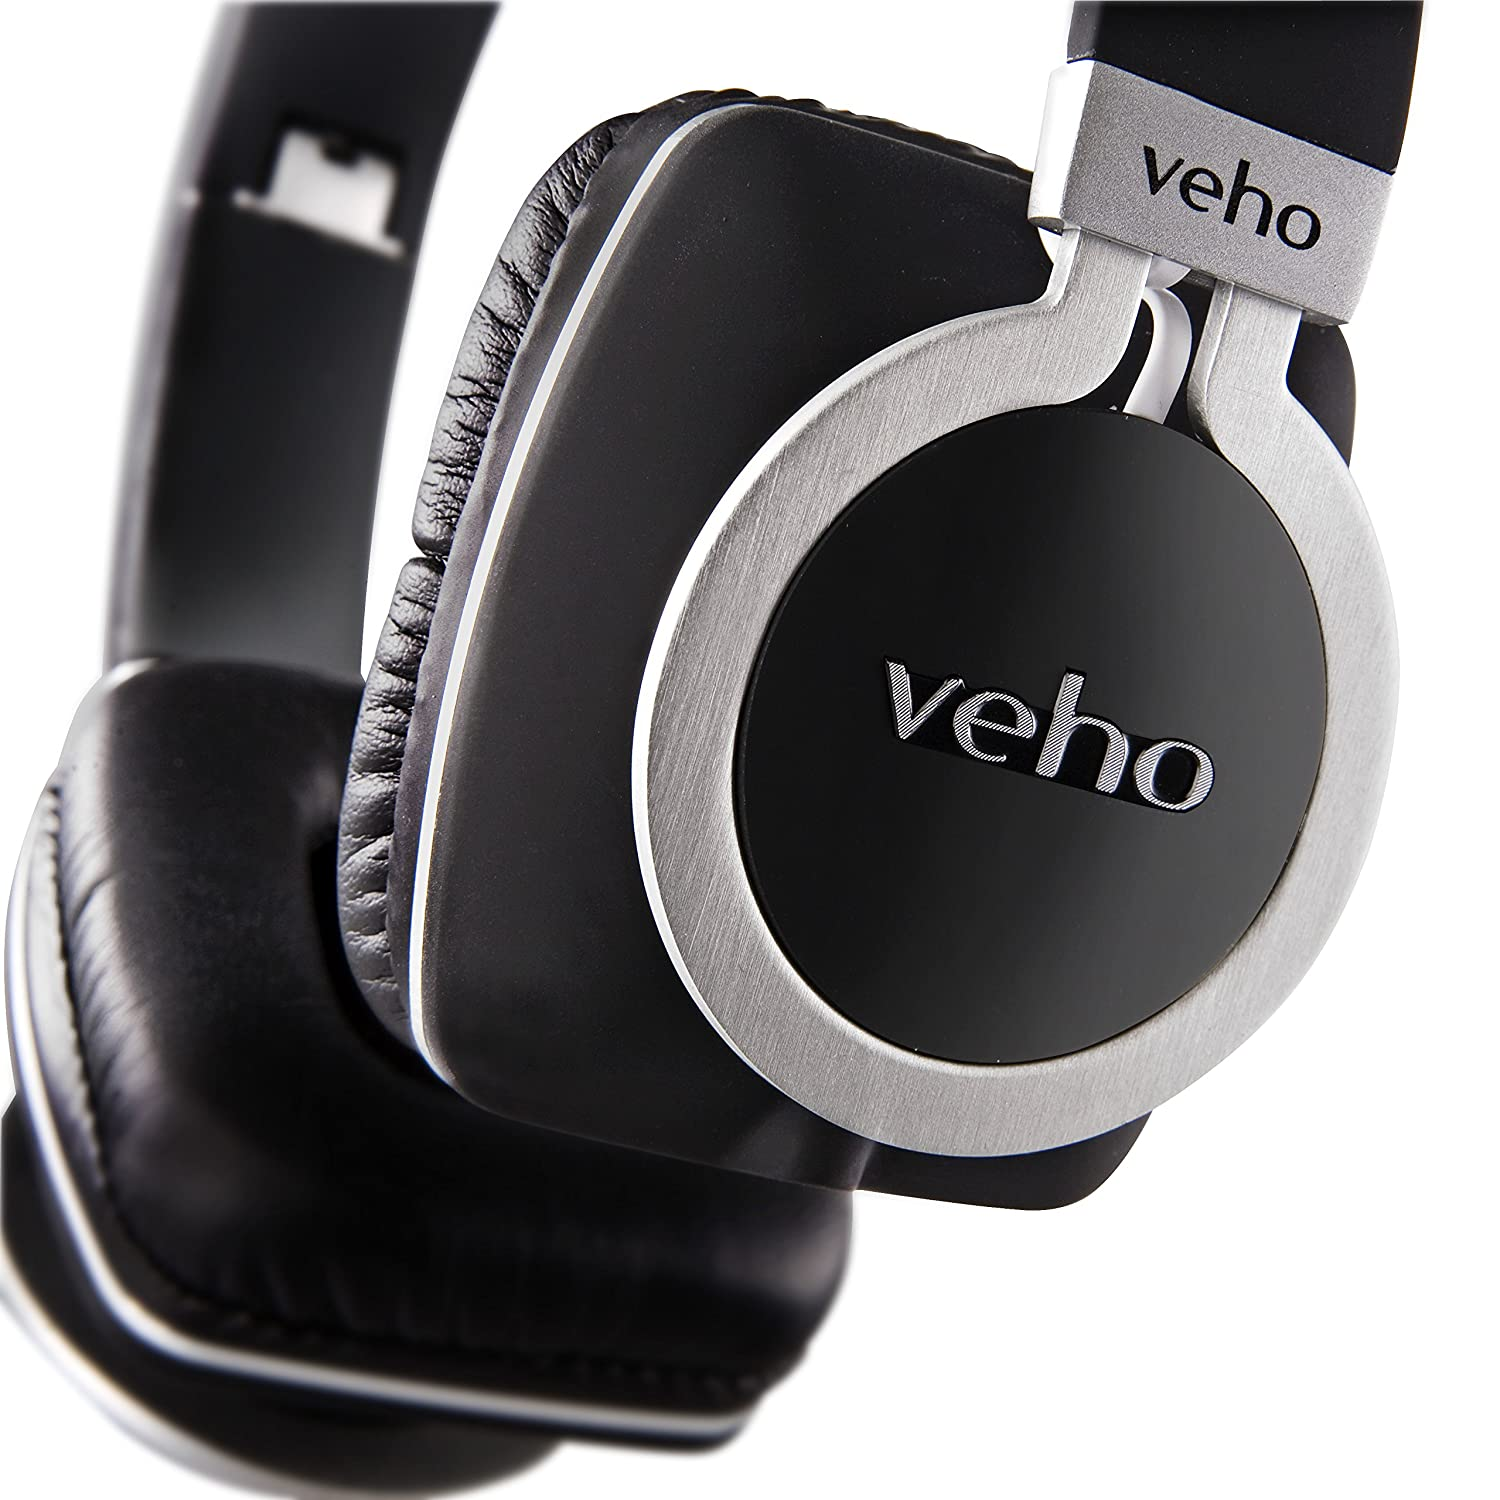 Veho VEP-008-Z8 360 Z8 Designer Aluminium Headphones with Detachable Flex Cord System and Folding Design, Black VEP-008-Z8_Black